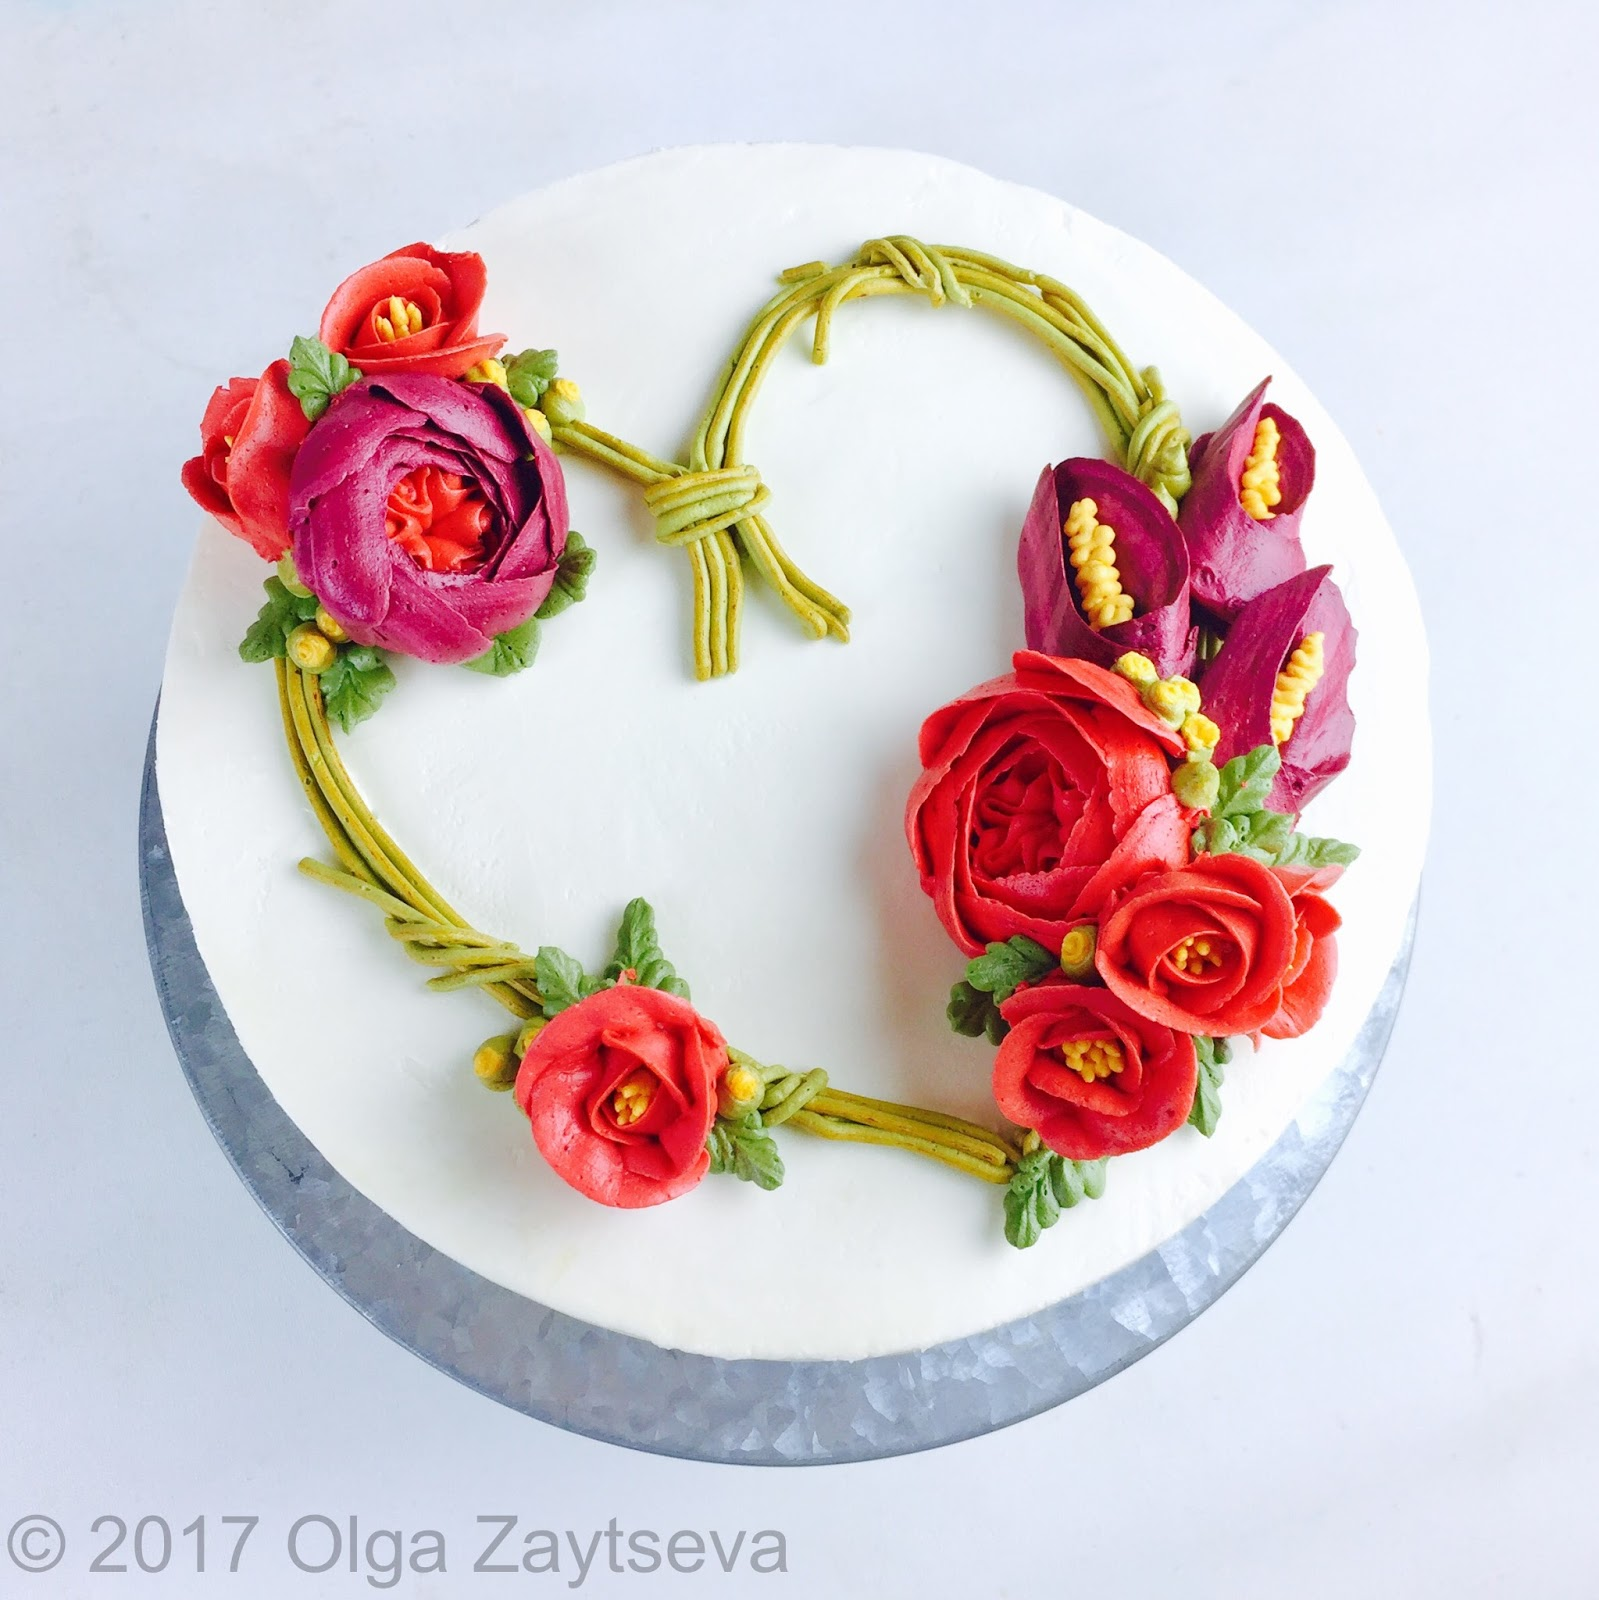 Cupcake flower design learn how to pipe calla lilies and roses and learn how to pipe calla lilies and roses and create this heart shaped buttercream flower wreath izmirmasajfo